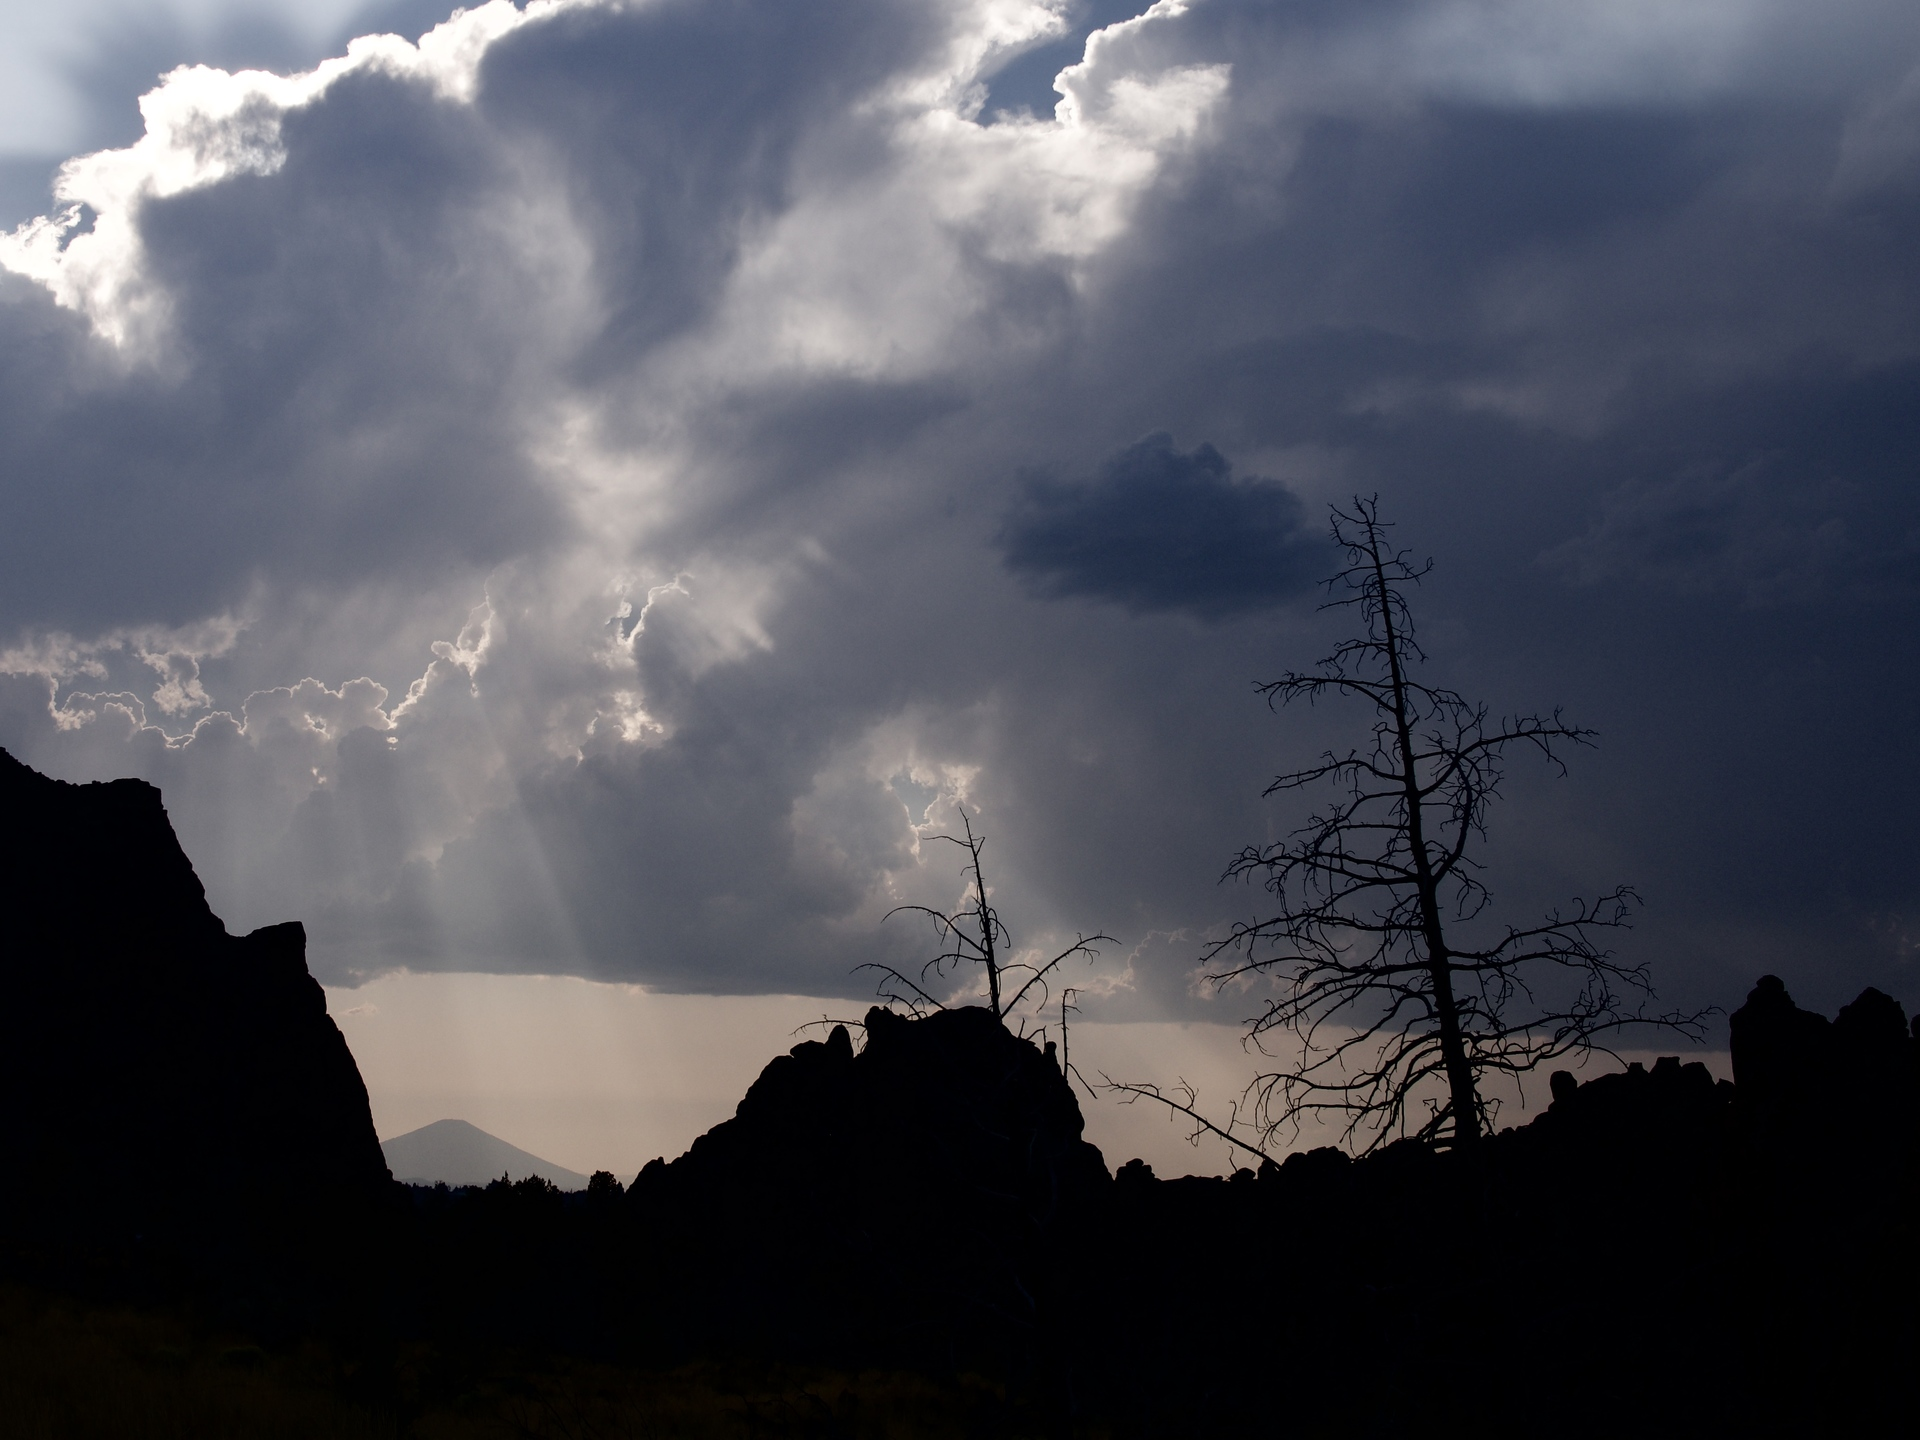 Beautiful sun rays break through the clouds after an evening summer rain storm at Smith Rocks in Central Oregon with Black Butte in the background and silhouetted trees in the foreground.